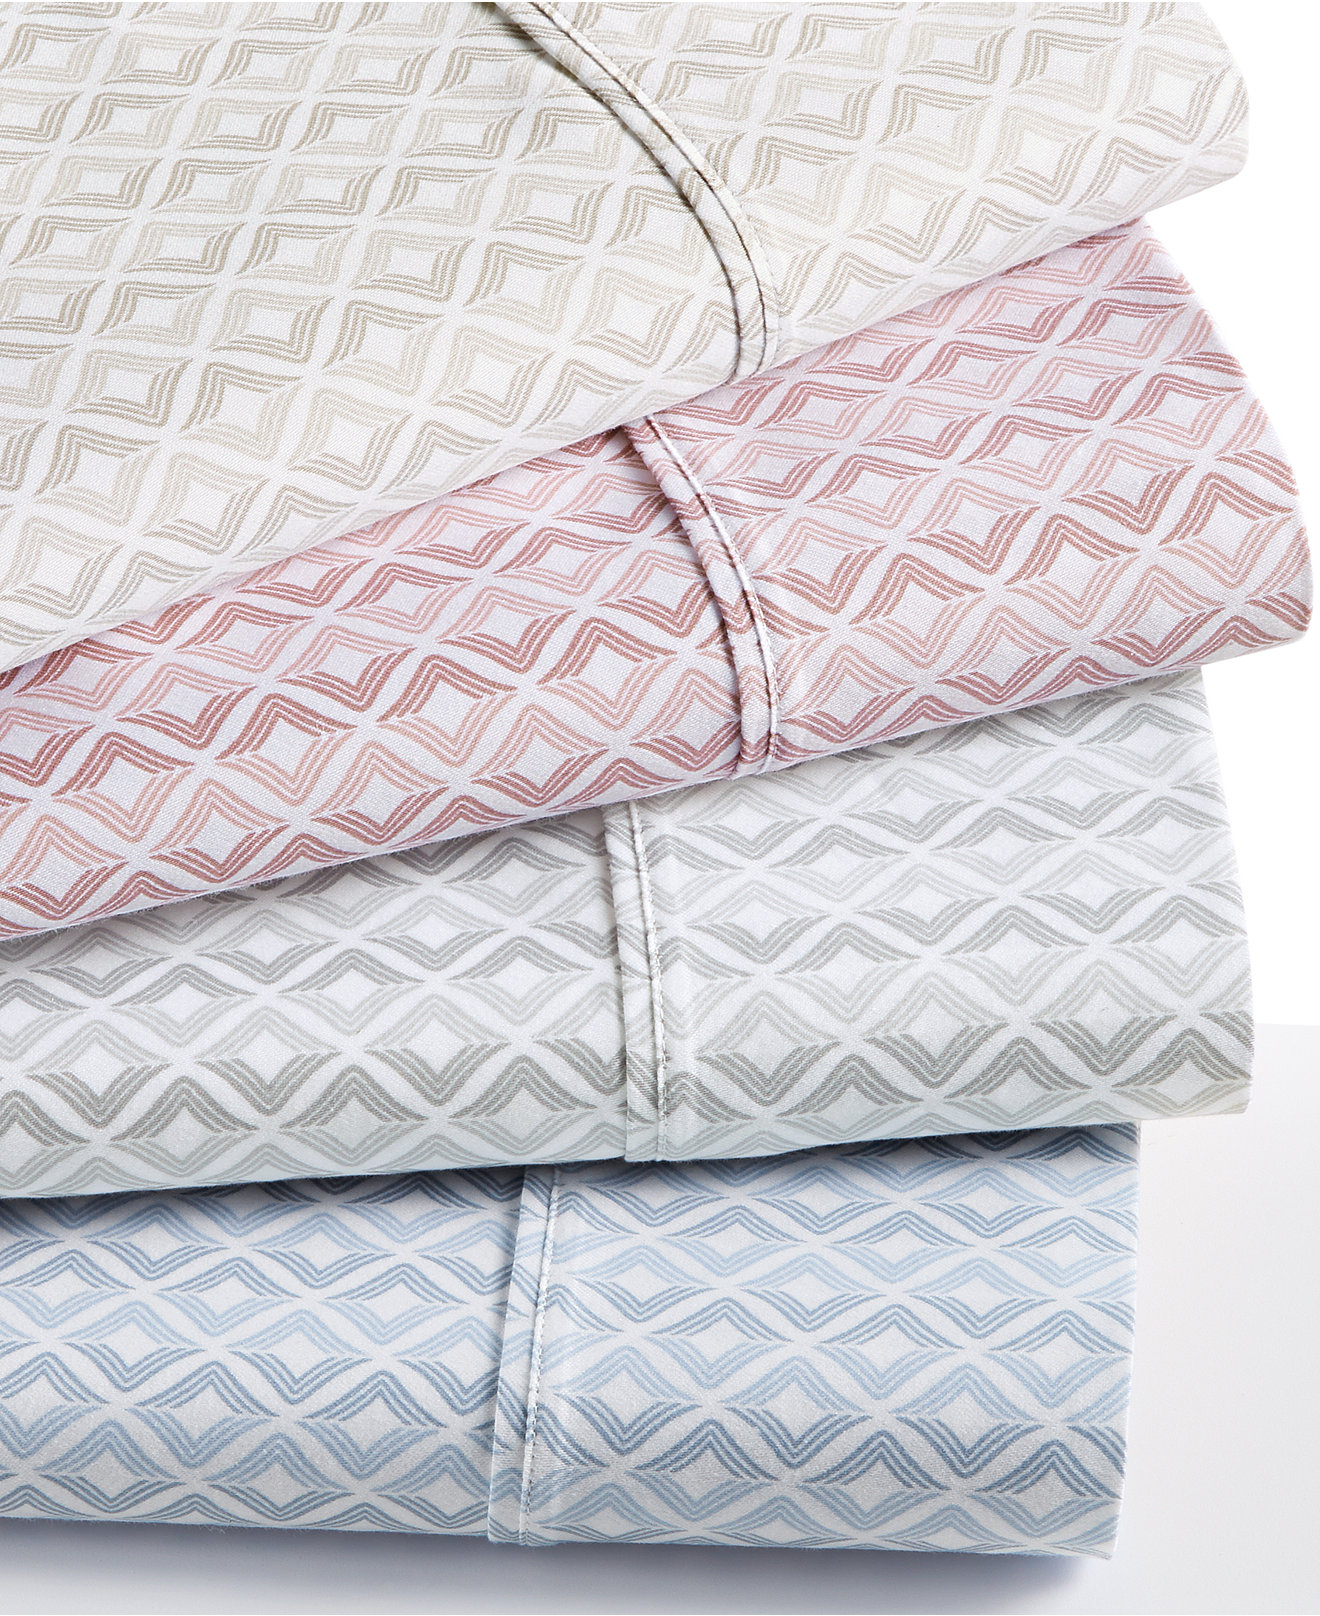 sheet sets bed sheets  macy's - sorrento print pc sheet sets  thread count created for macy's